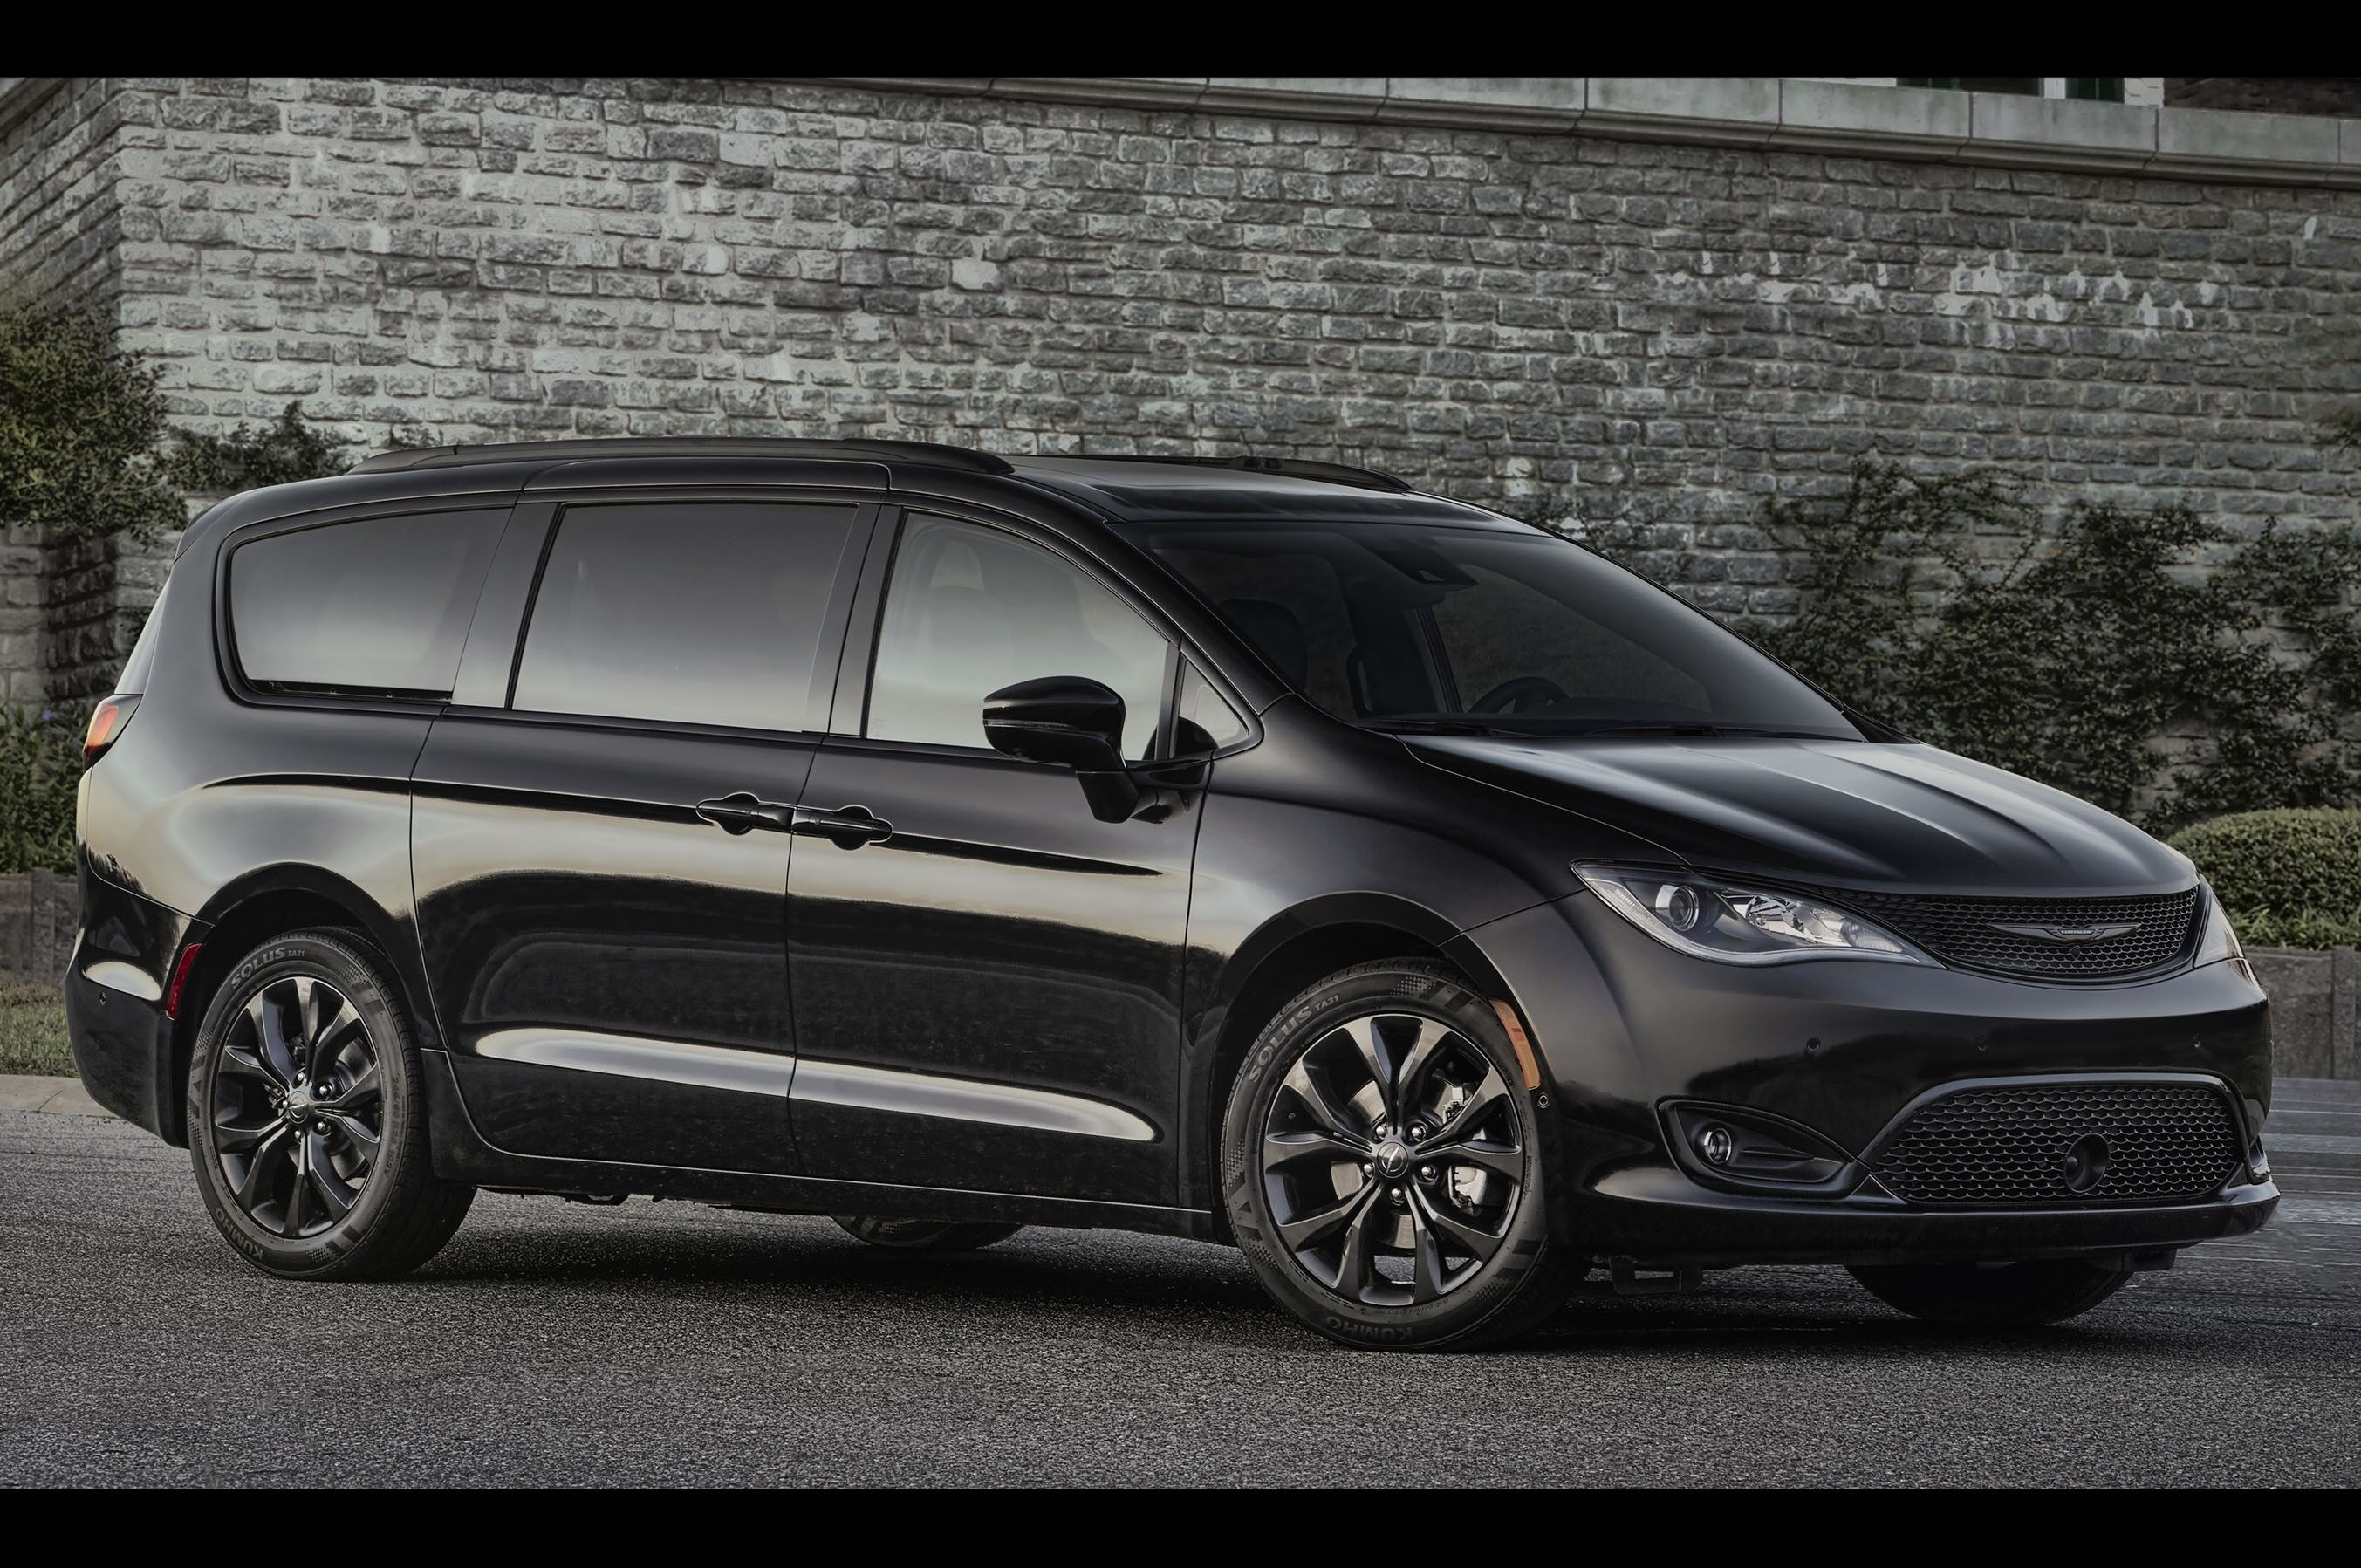 2018 Chrysler Pacifica Overview And Price Car Review 2019